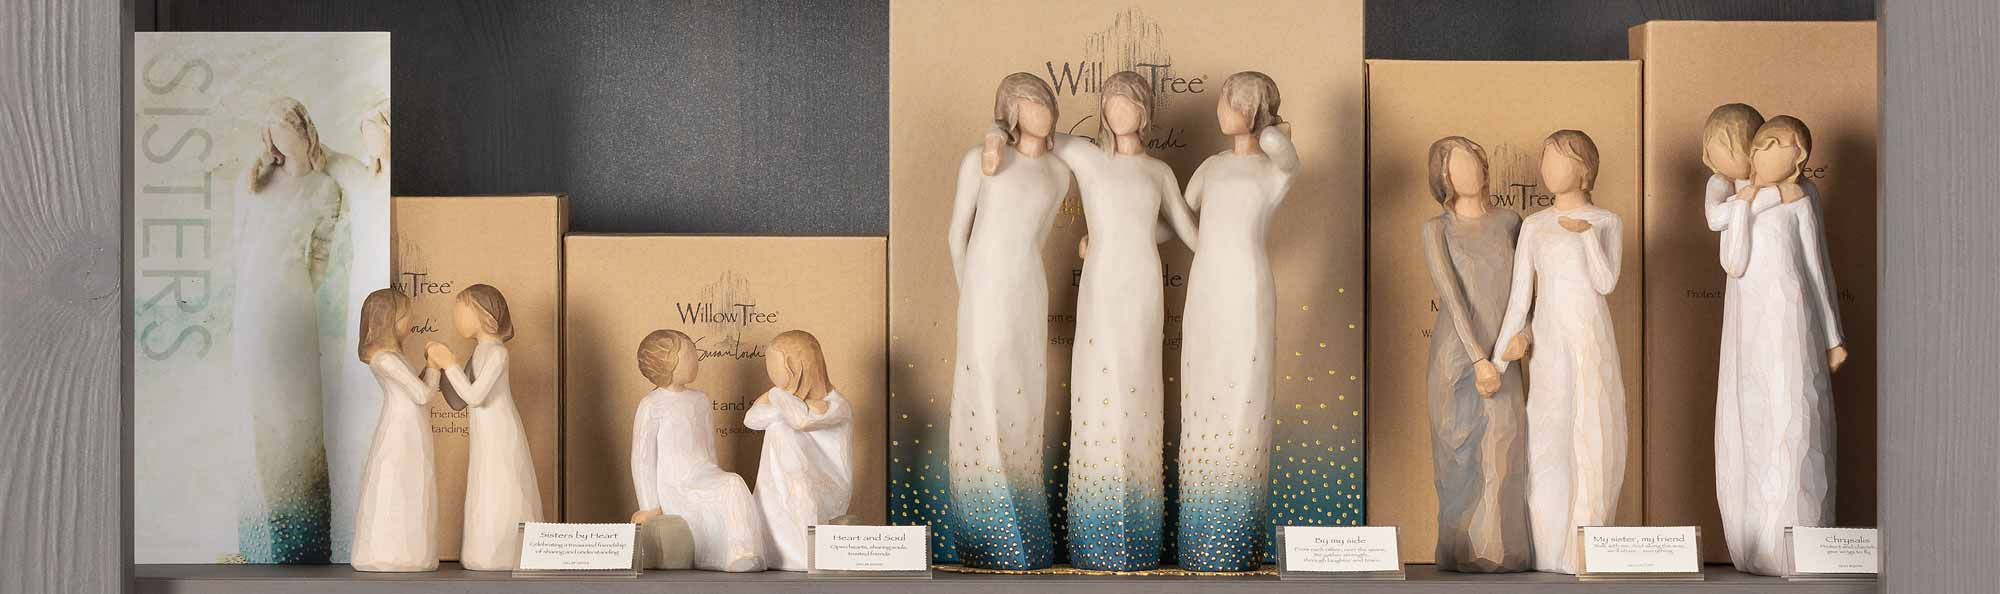 Willow Tree hand carved figures displayed on a store shelf with a sign that says SISTERS